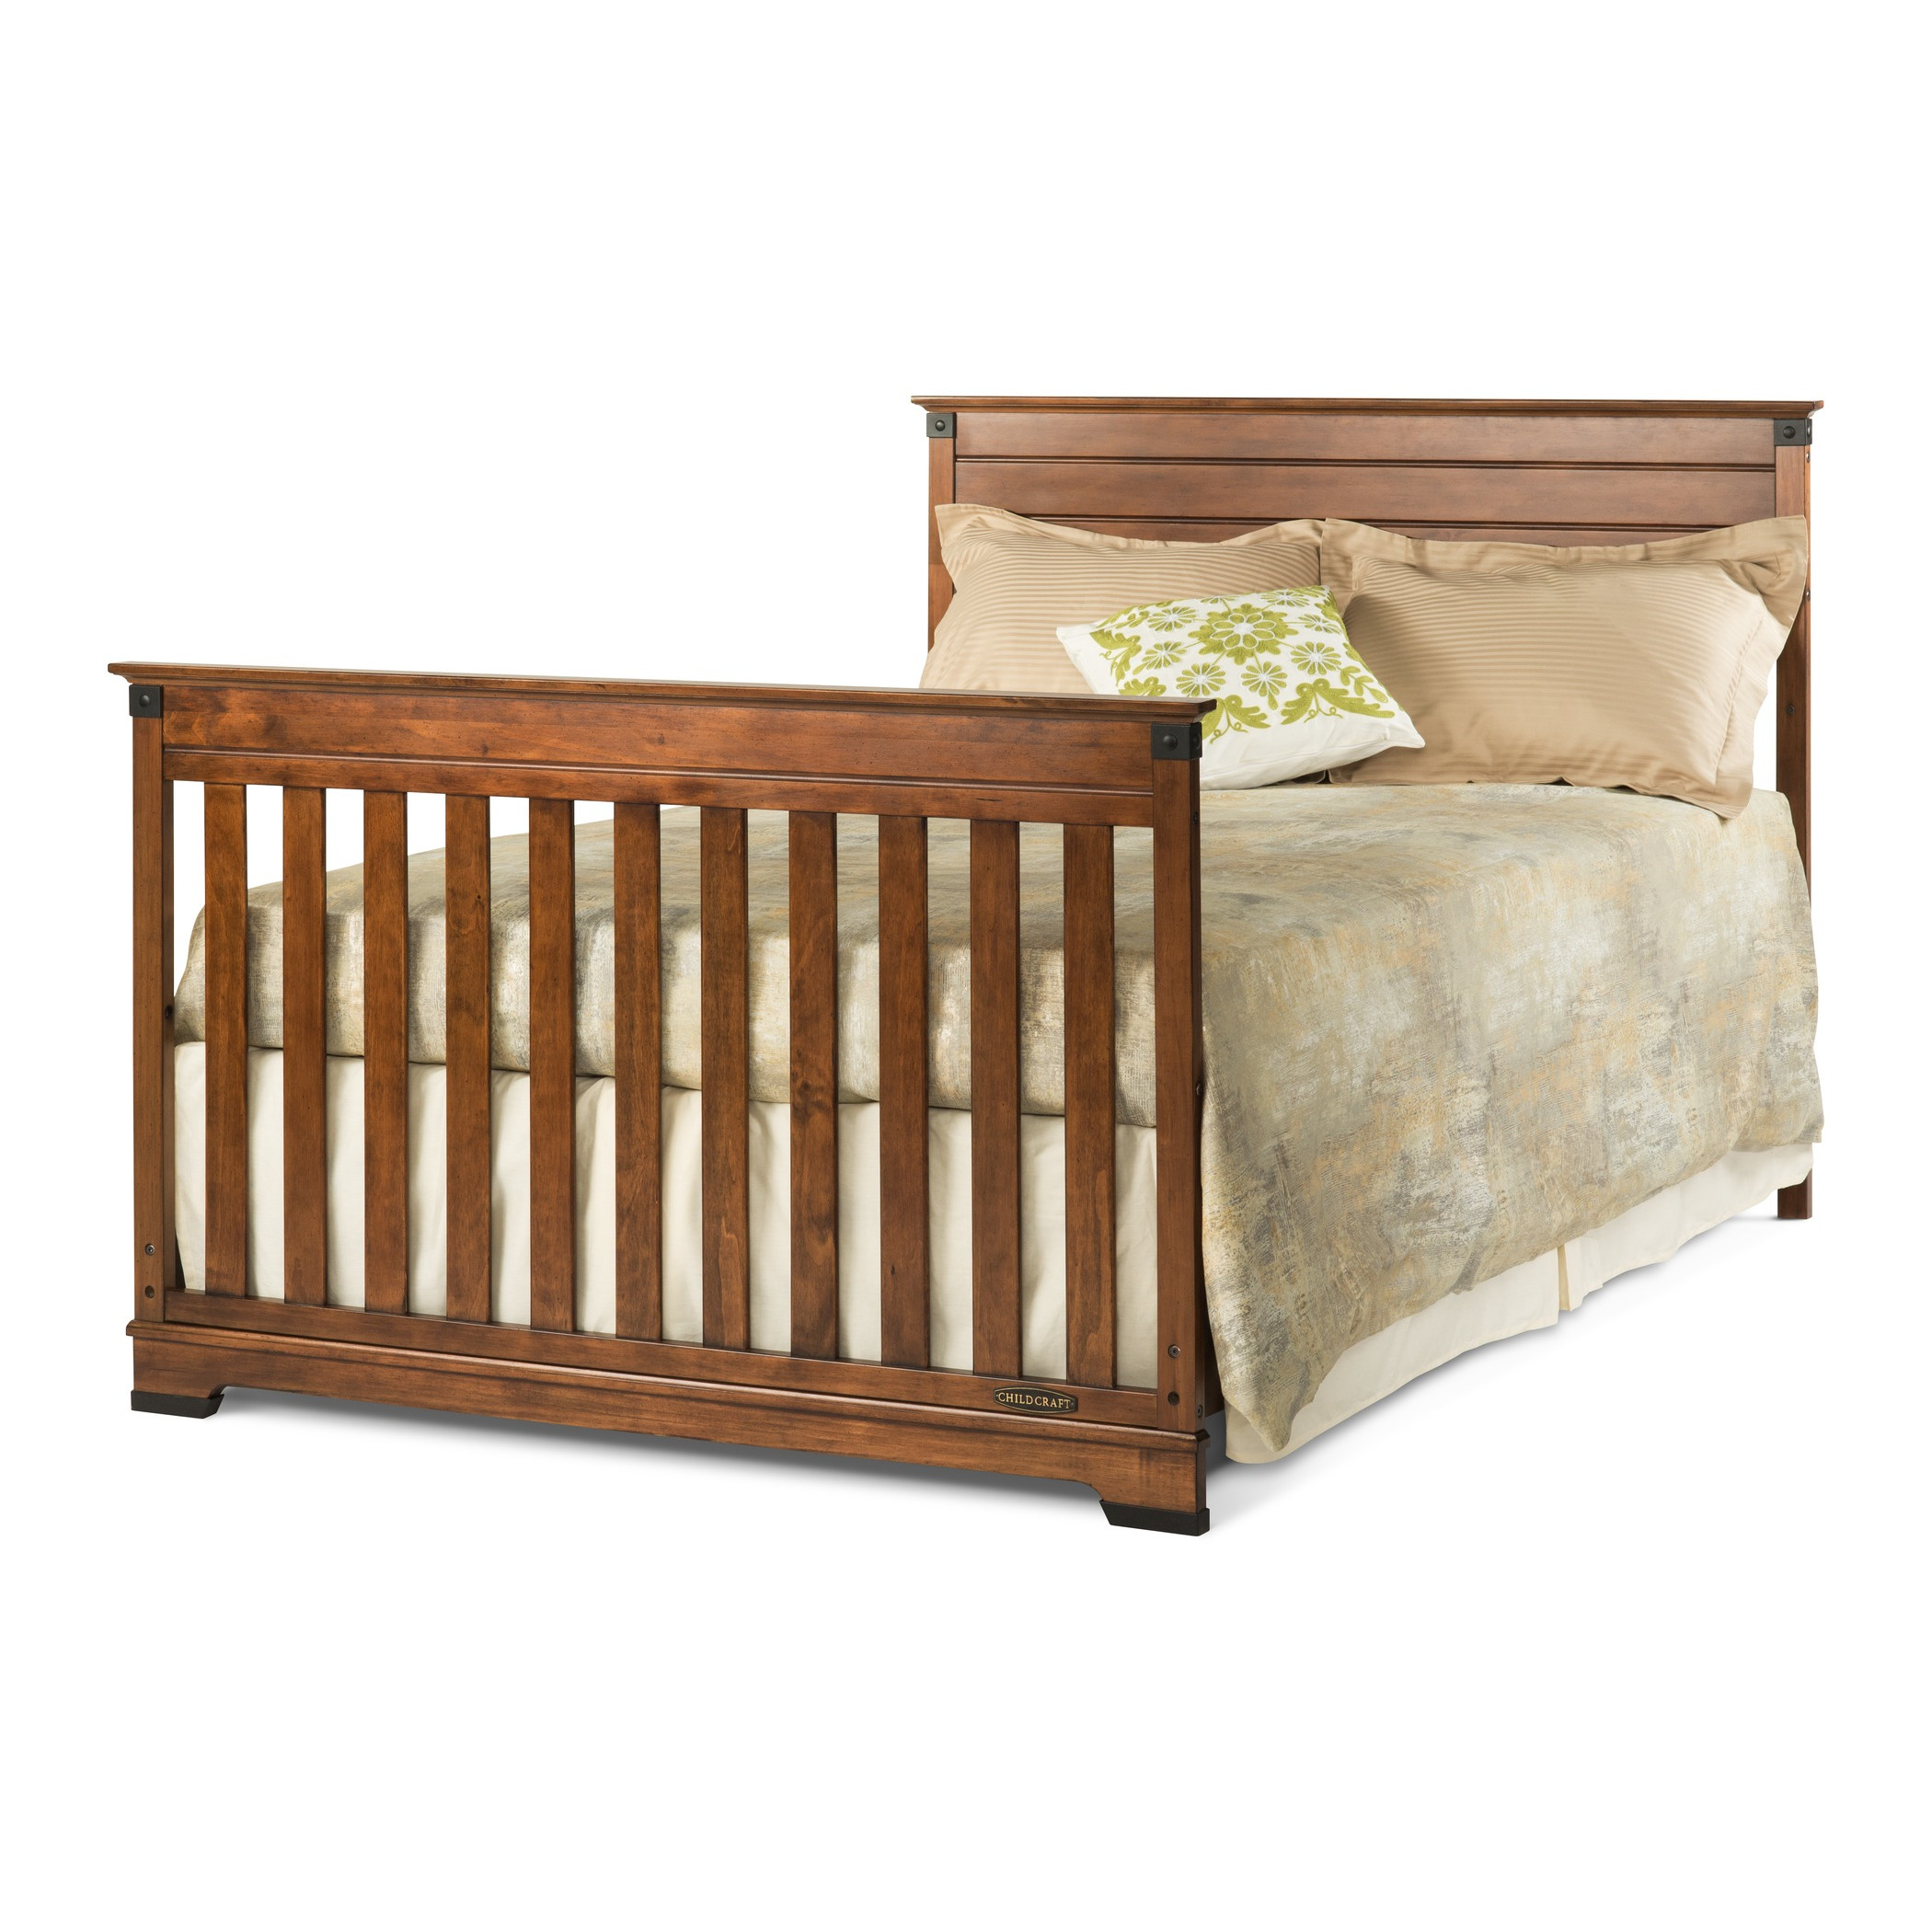 Charming Baby Cache Heritage Lifetime Convertible Crib for Best Baby Crib Choice: Babies R Us Cribs And Dressers | Cache Baby Crib | Baby Cache Heritage Lifetime Convertible Crib